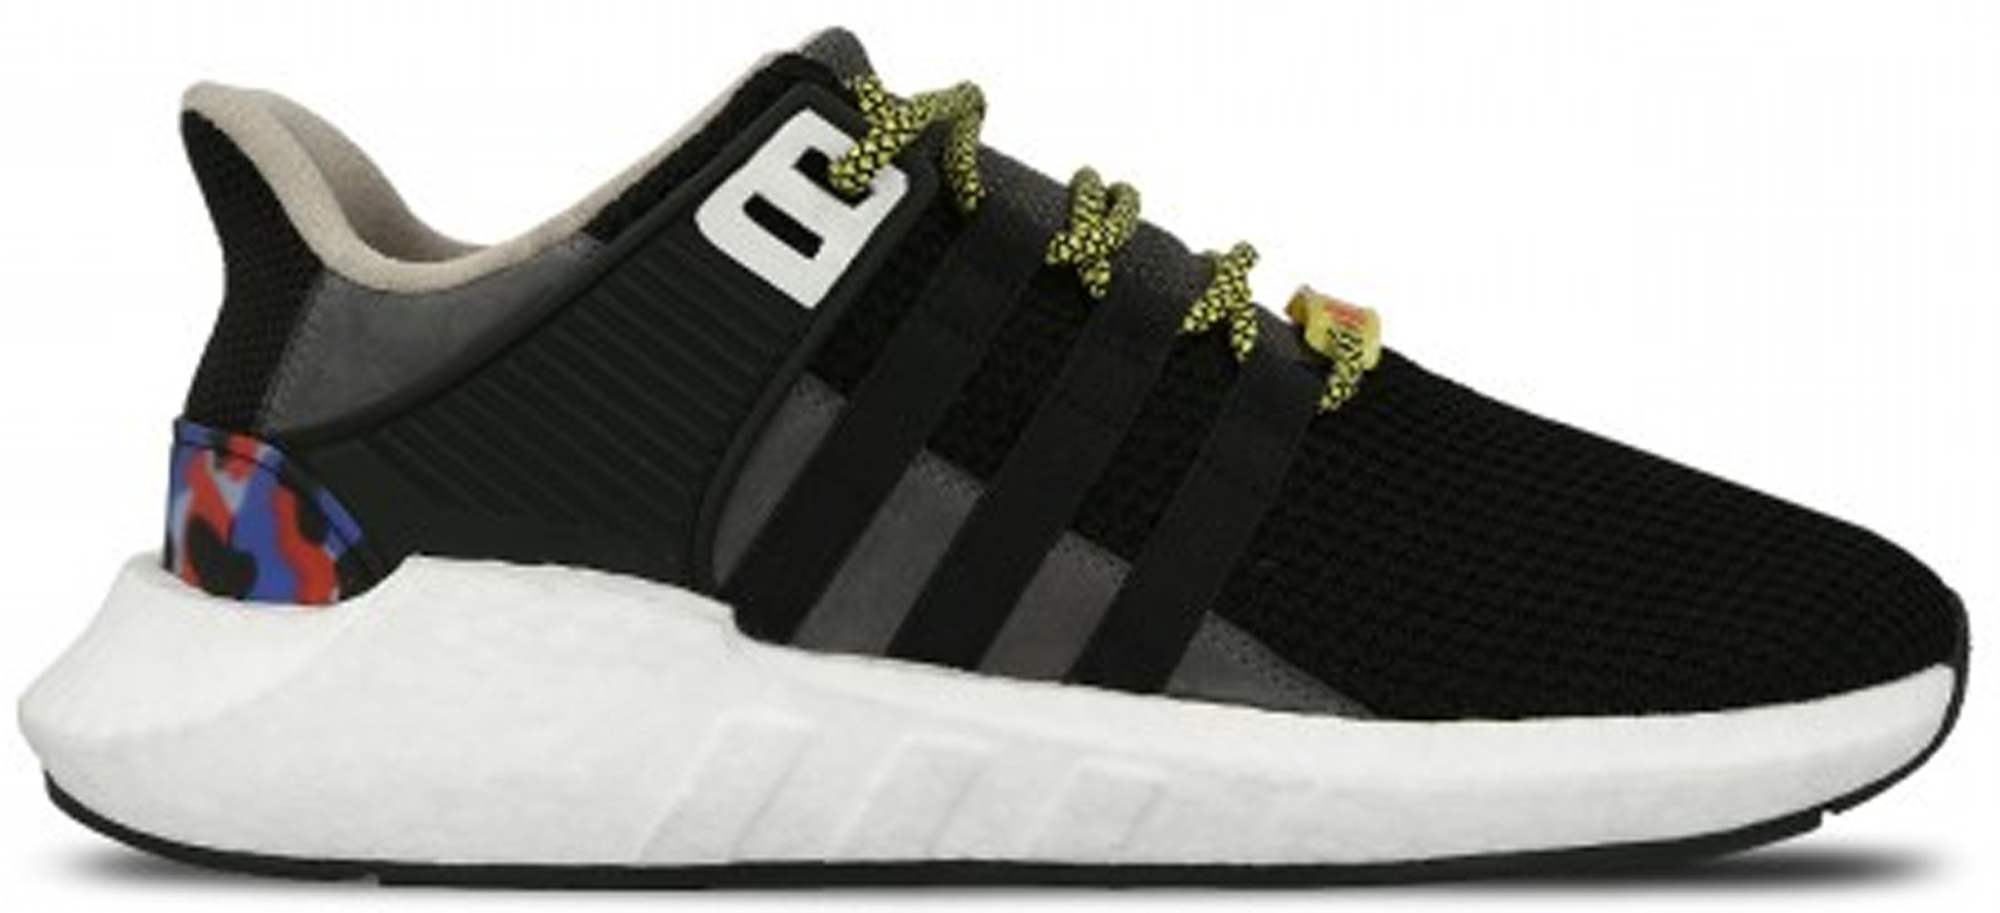 adidas EQT Support 93/17 Berlin BVG